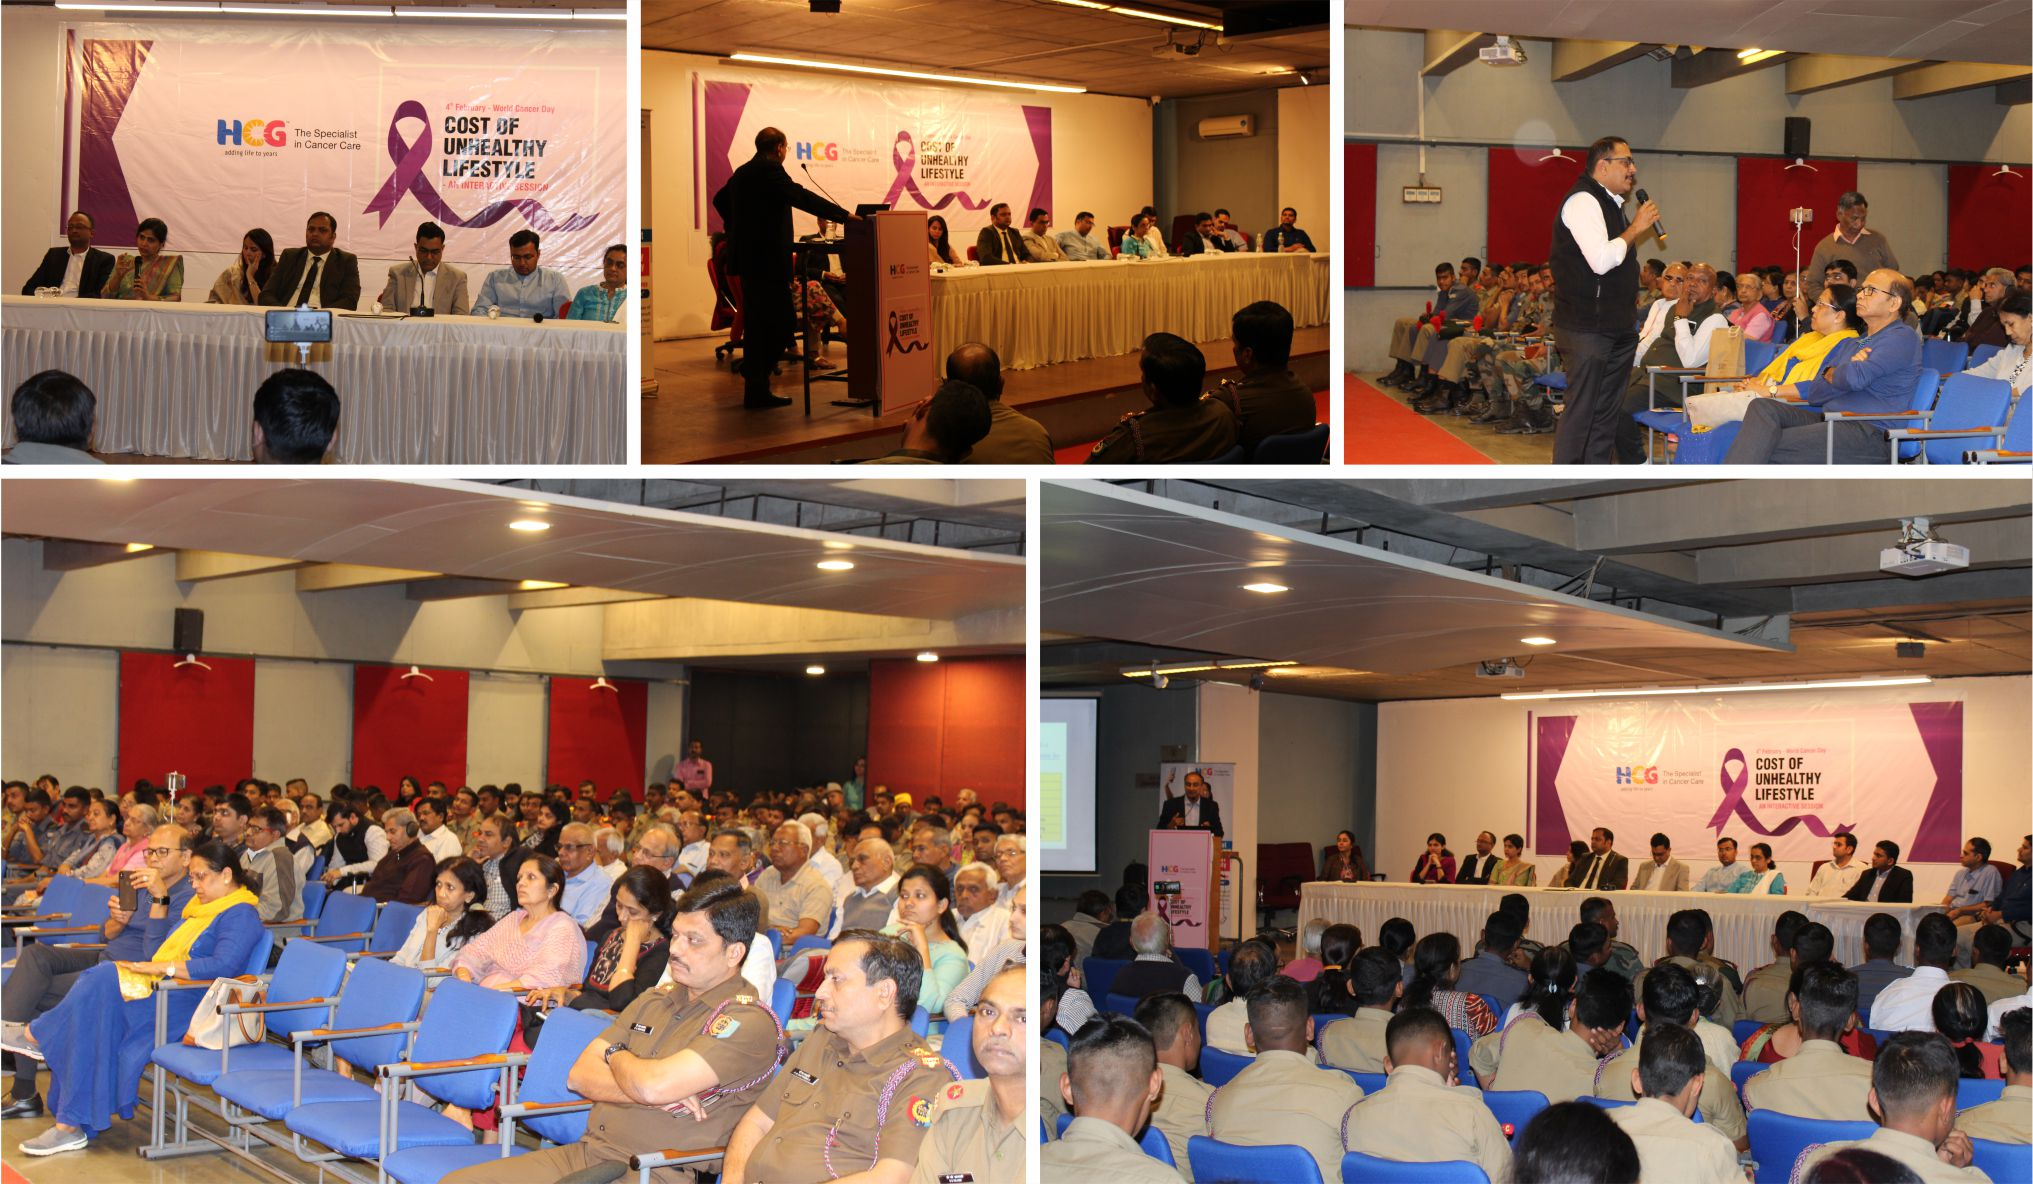 HCG Cancer Center organized a interactive session on World Cancer Day 2020